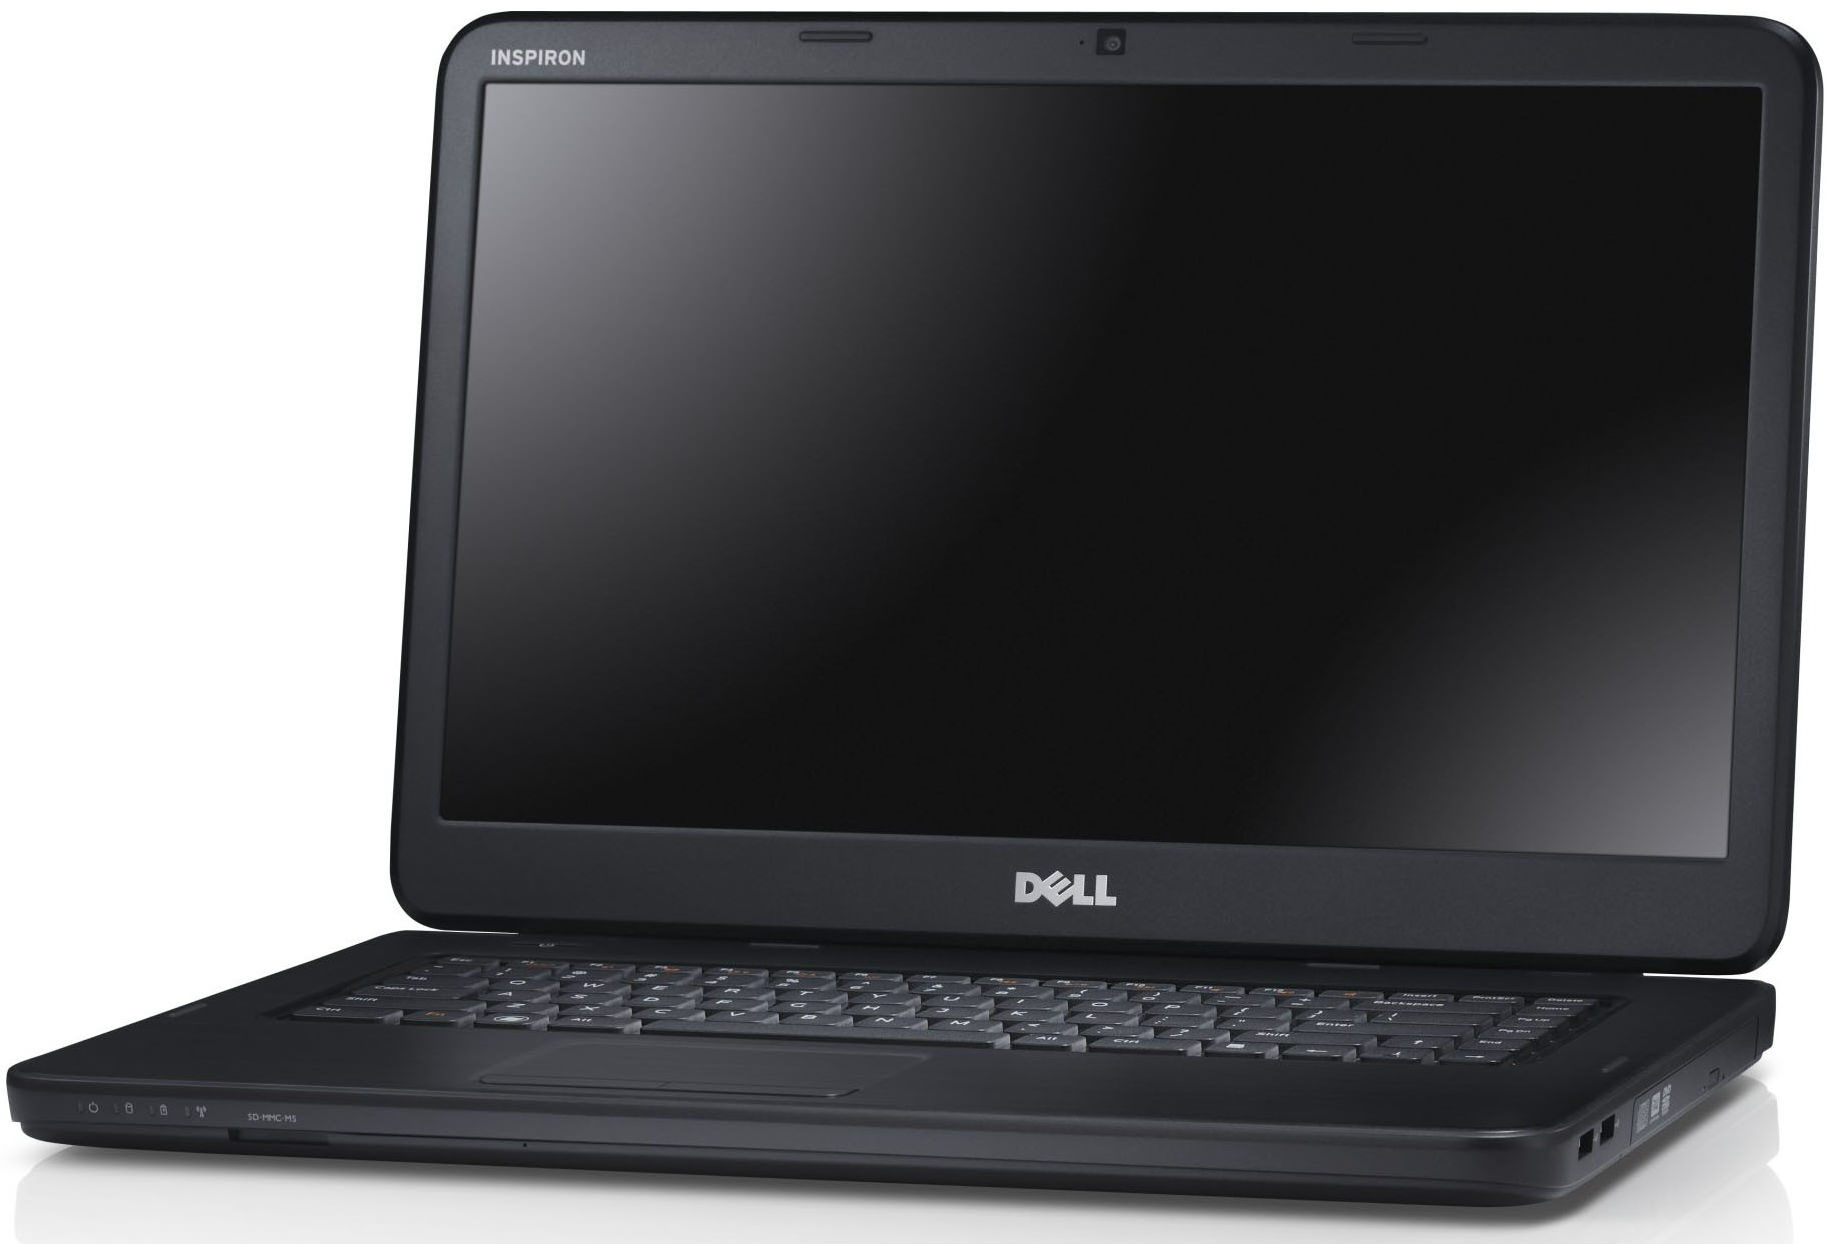 DRIVER UPDATE: DELL INSPIRON 15 3520